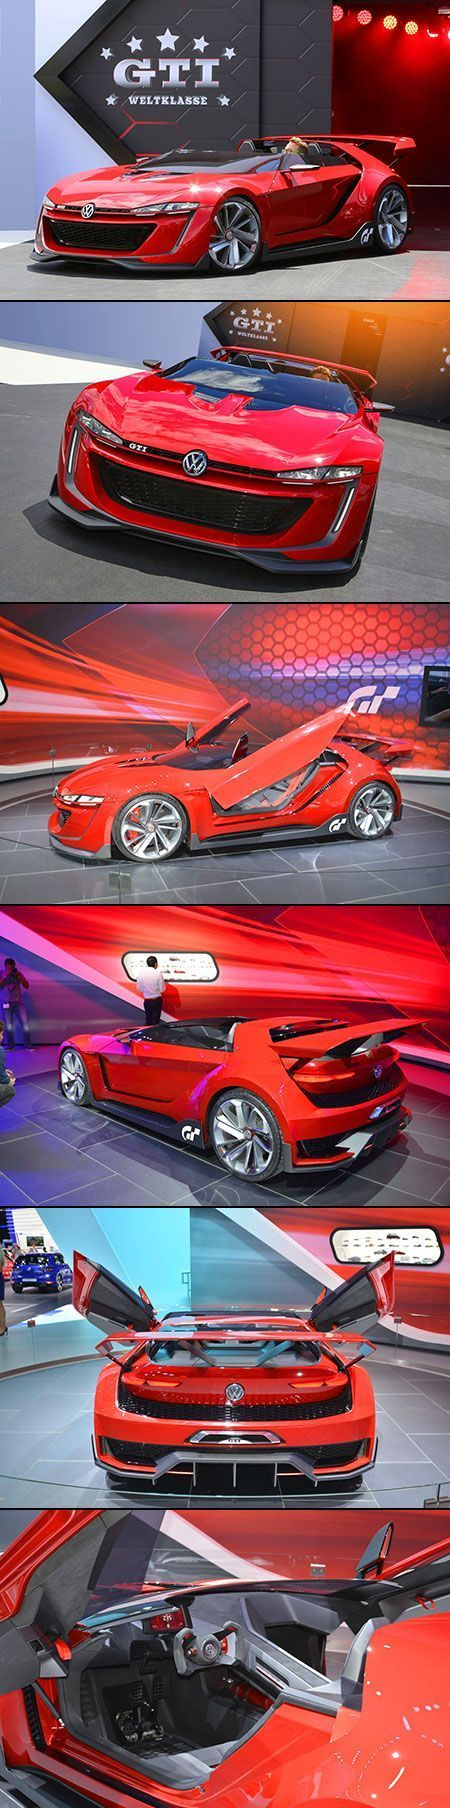 Concept Car from VW Looks Futuristic and Out of a Game